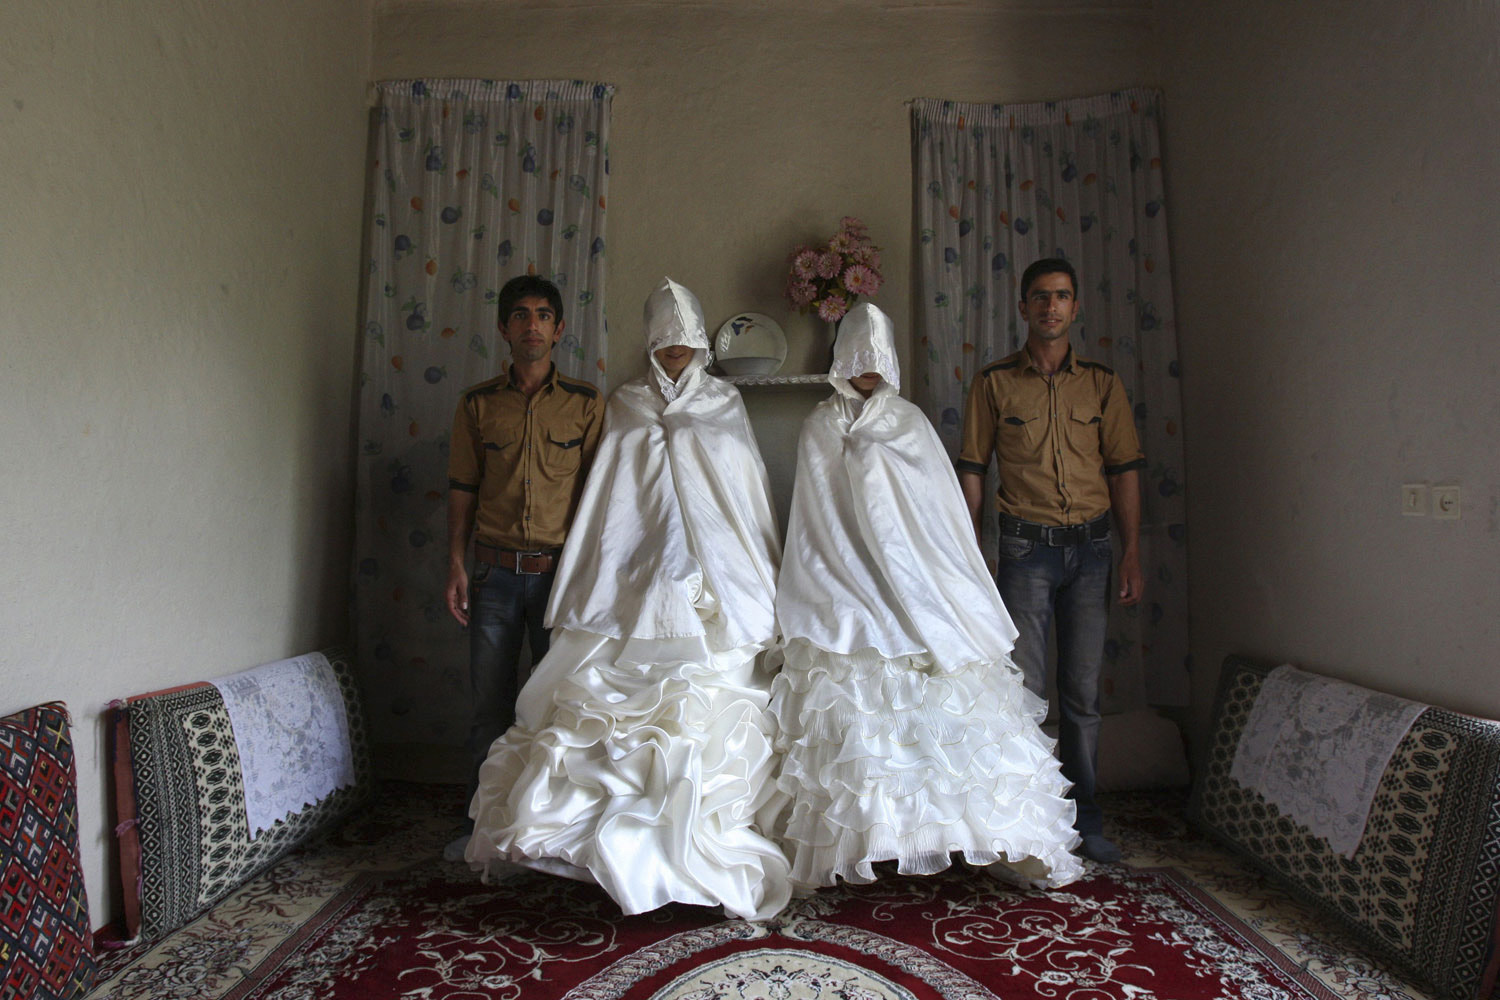 July 15, 2011. Preparing for their dual wedding ceremony, Iranian brothers Javad, left, and Mehdi Jafari pose with their brides-to-be before donning their own formal dress in Ghalehsar.